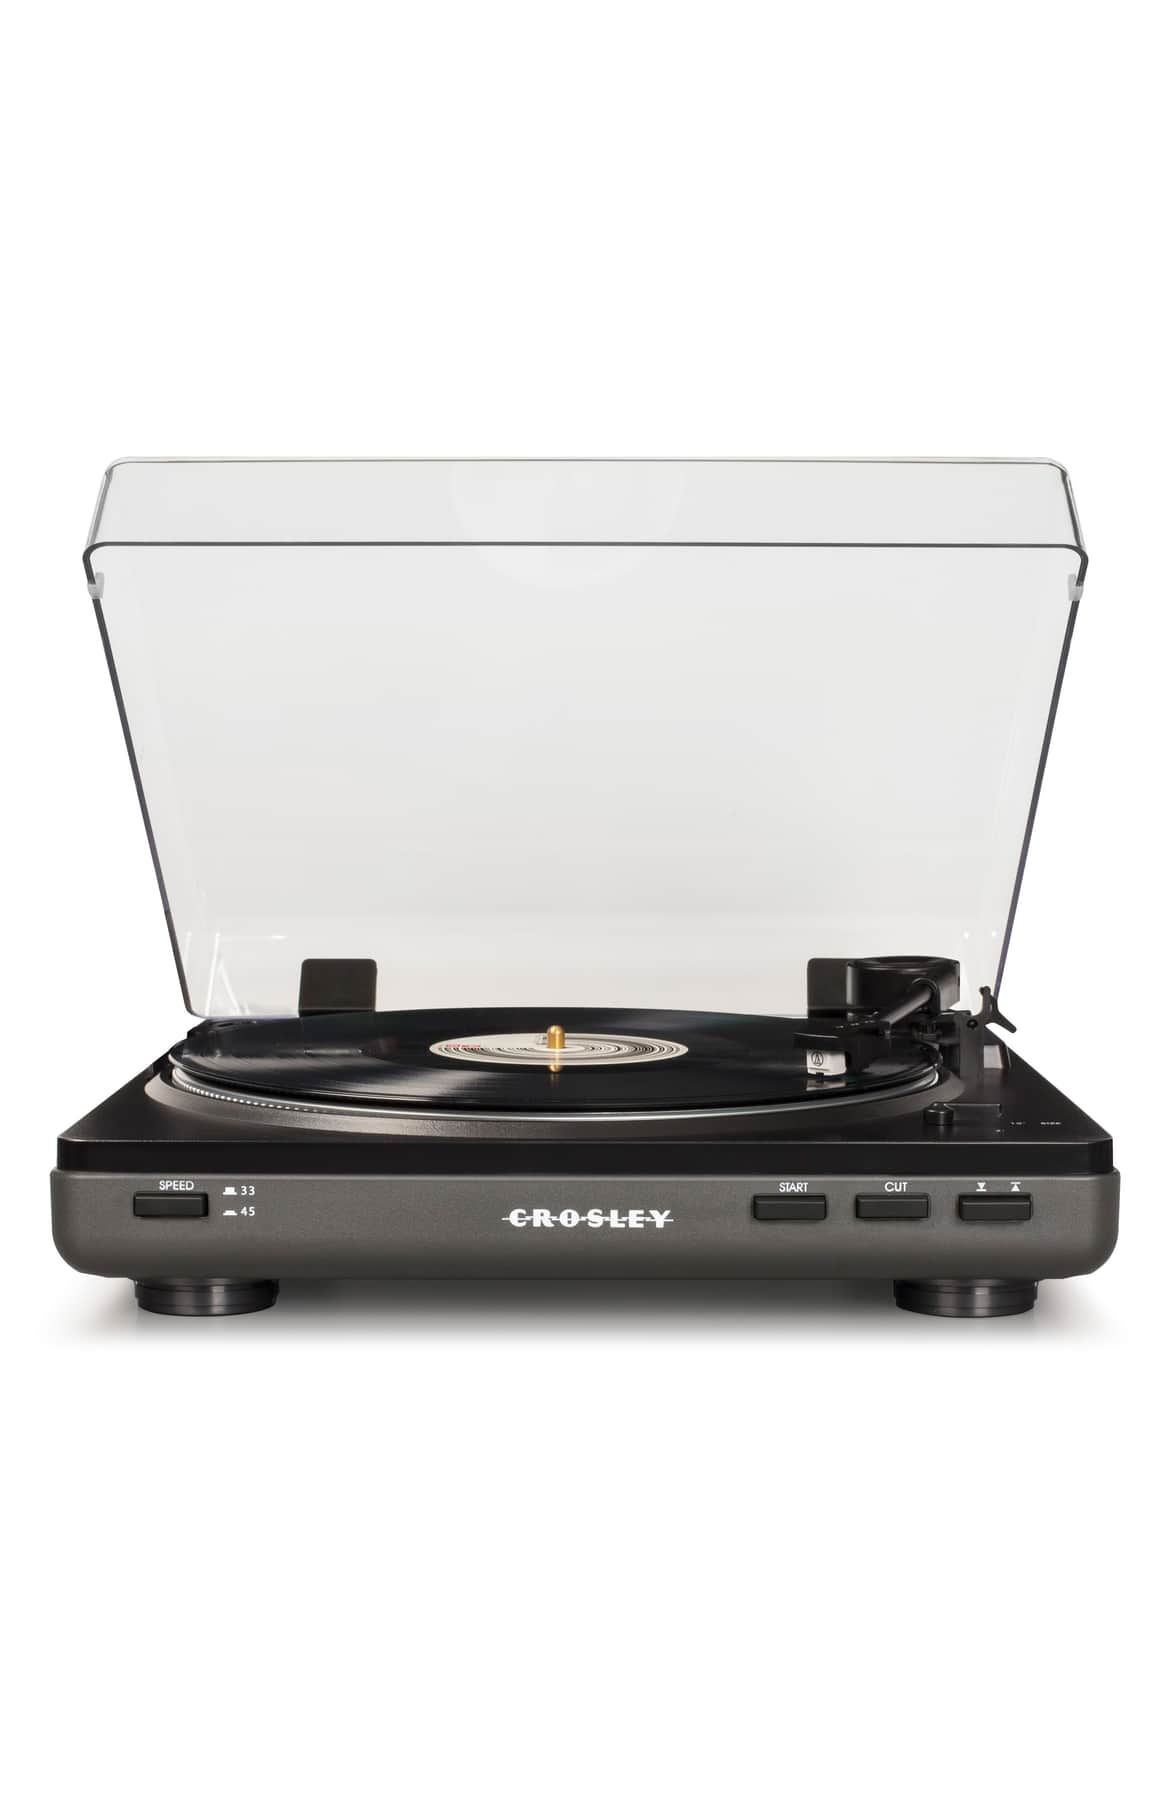 <p>A classic belt-driven turntable boasts modern capabilities with a vintage-inspired aesthetic.{&amp;nbsp;}Price $129.95. (Image: Nordstrom){&amp;nbsp;}</p><p></p>